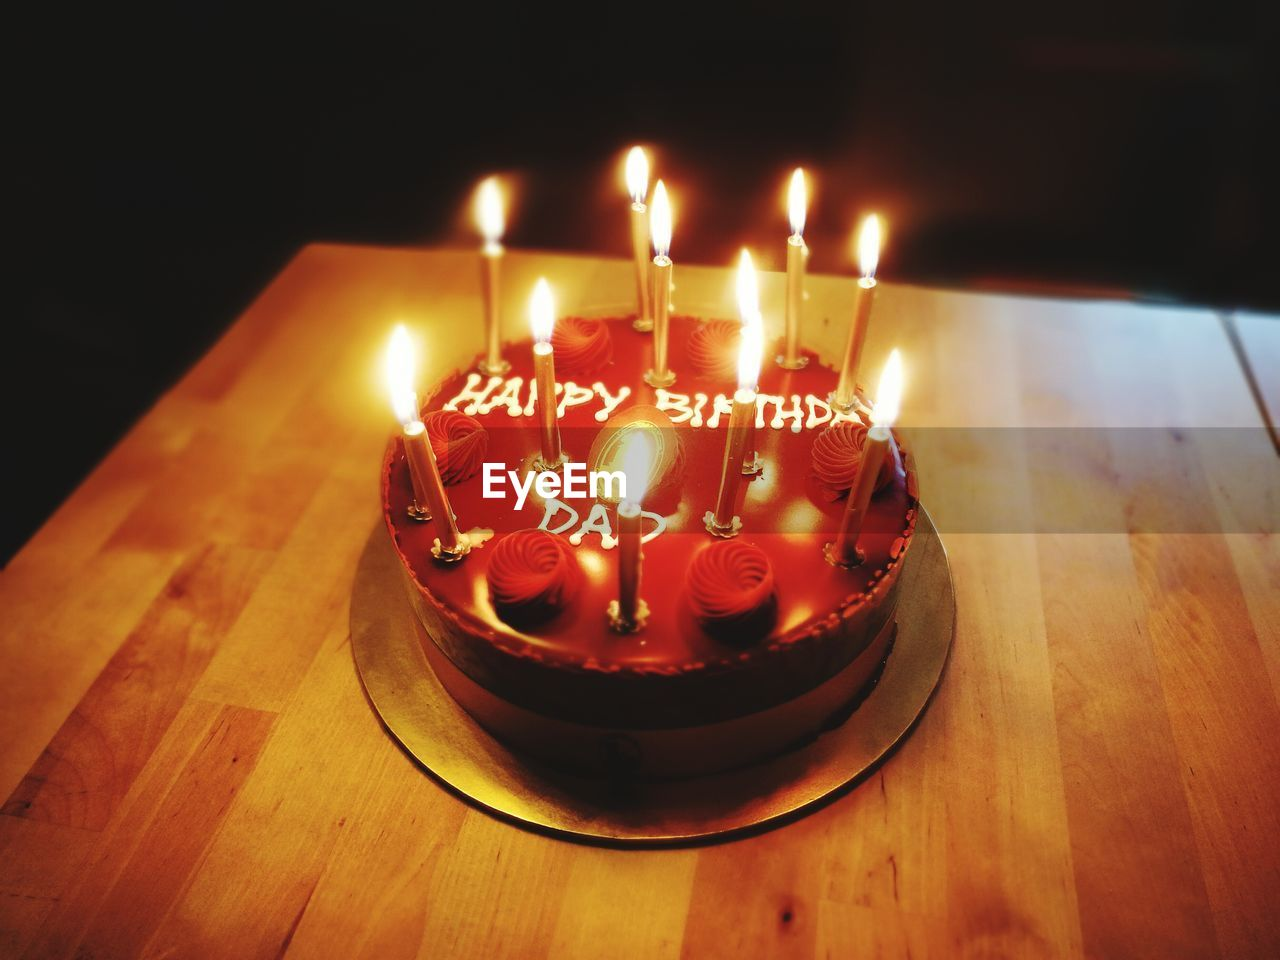 candle, flame, burning, celebration, birthday candles, indoors, text, table, birthday cake, cake, food and drink, heat - temperature, birthday, sweet food, high angle view, illuminated, indulgence, no people, temptation, life events, food, freshness, close-up